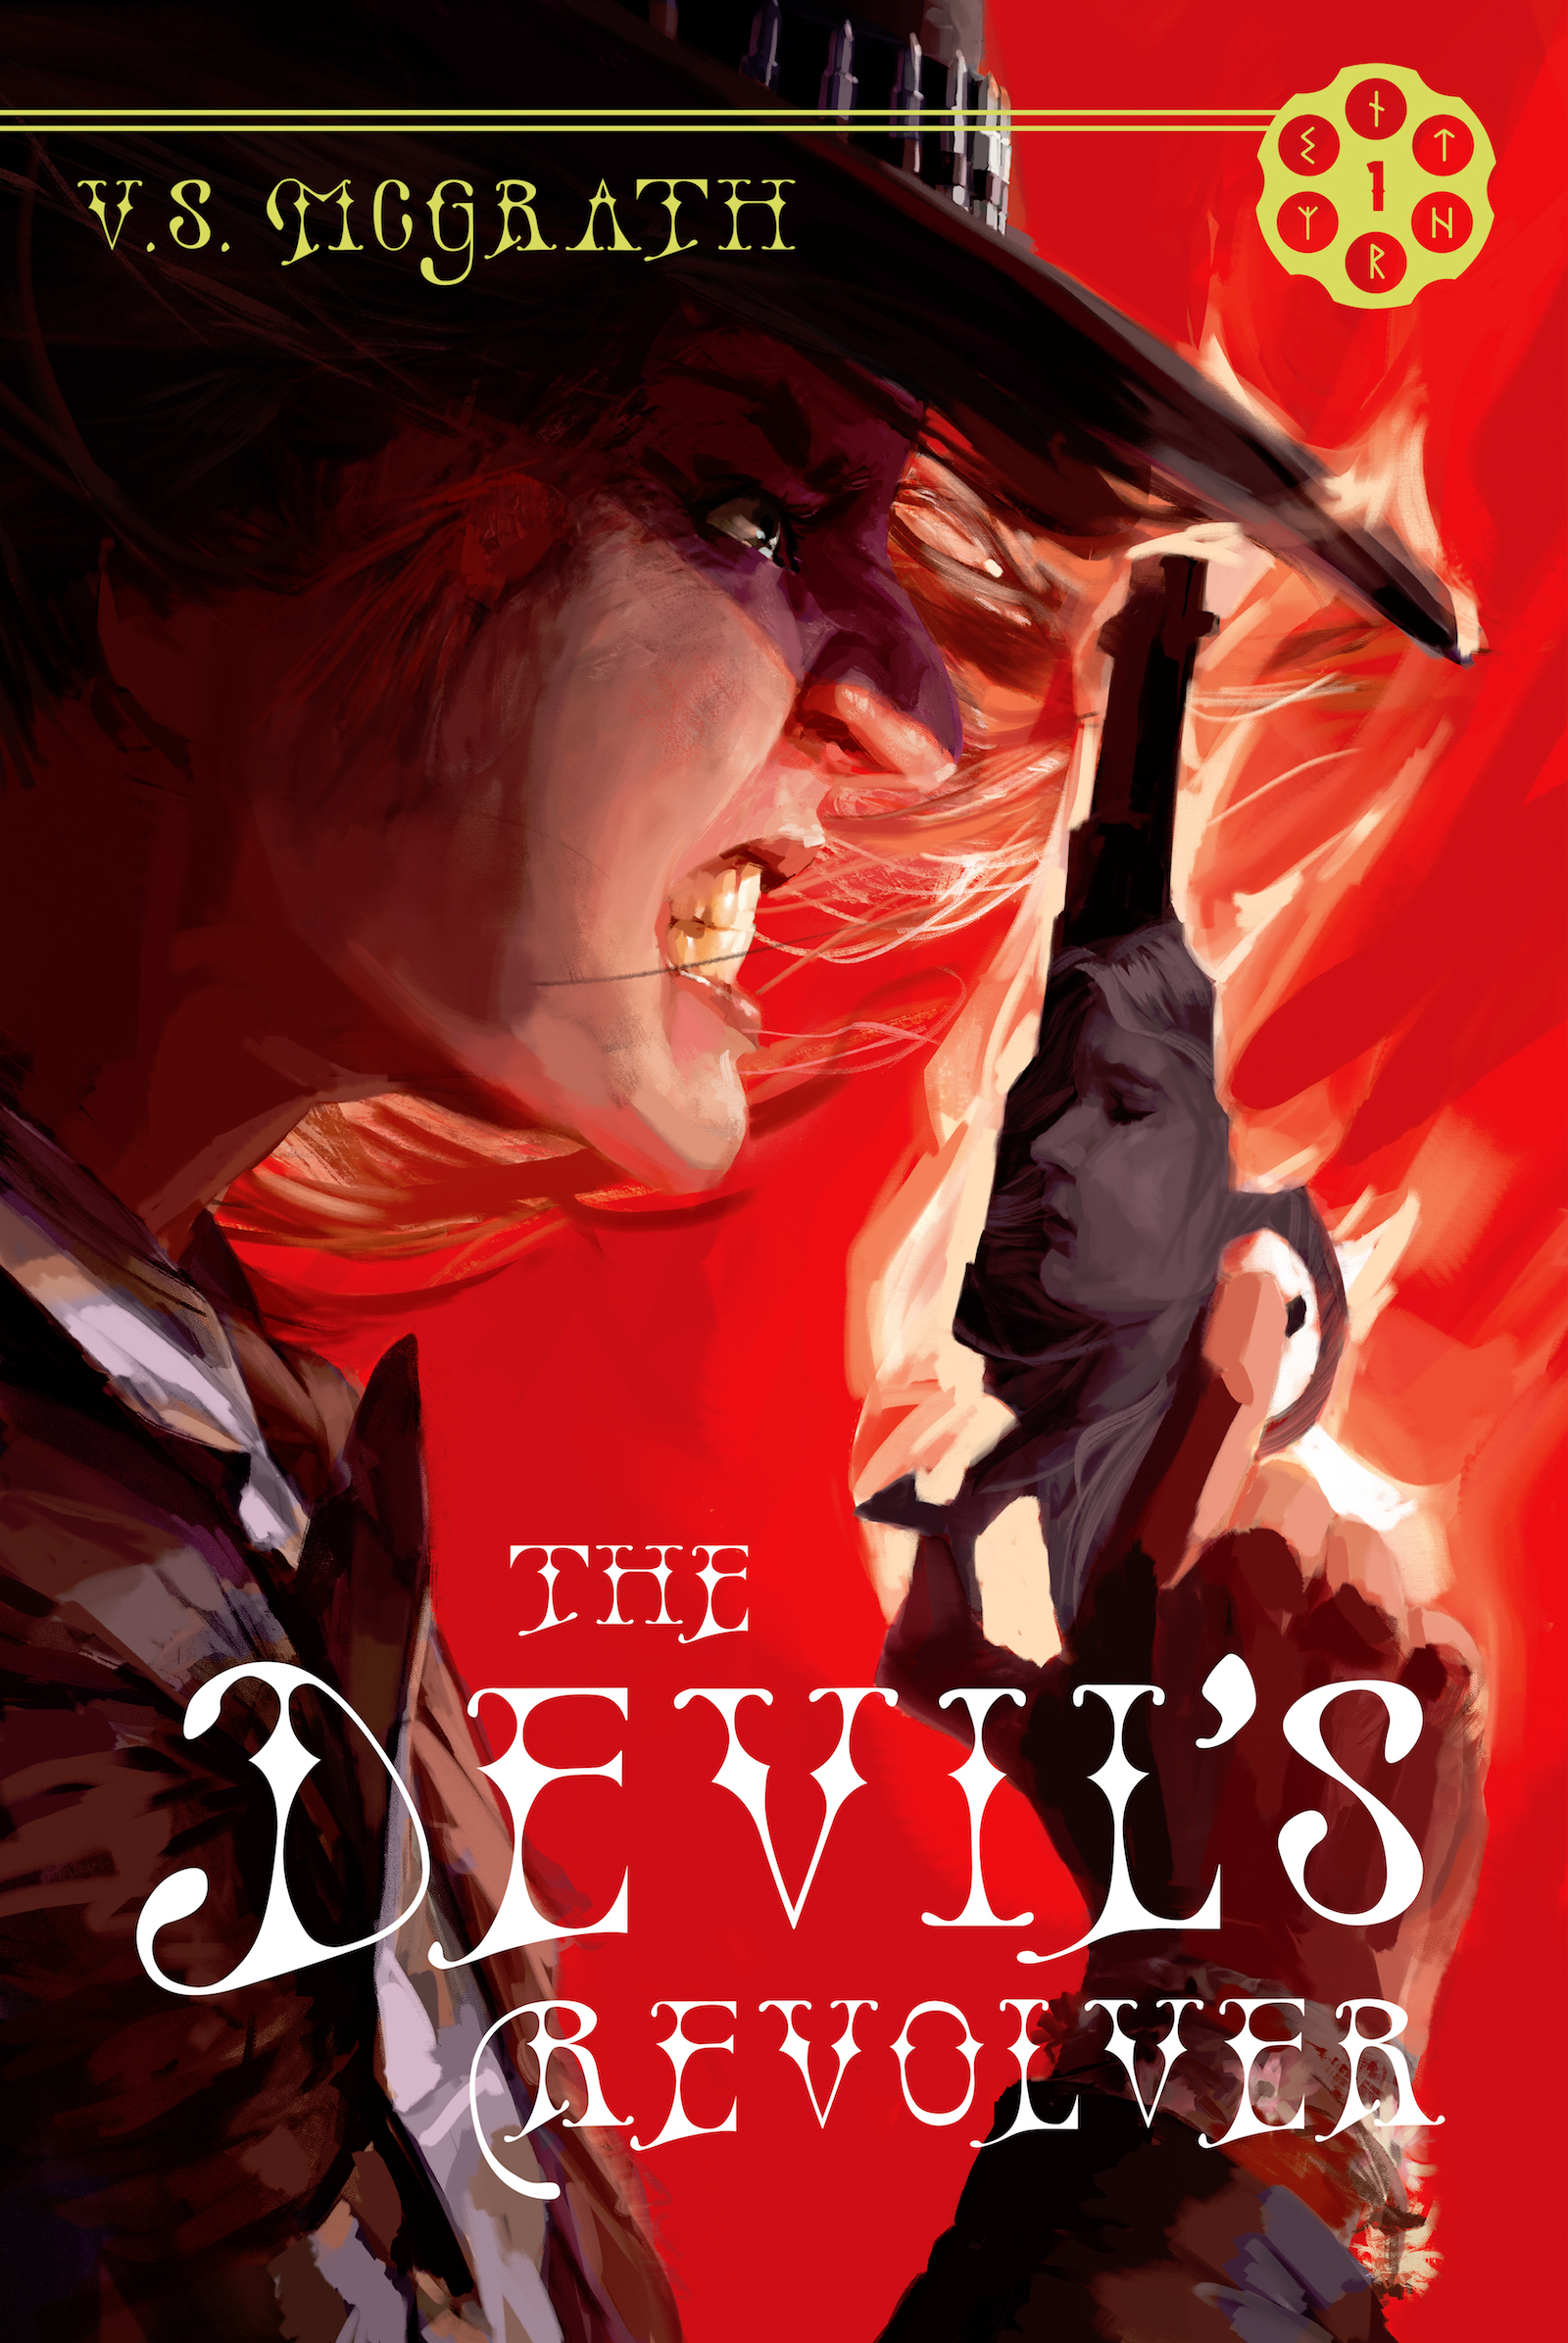 The Devil's Revolver by V. S. McGrath